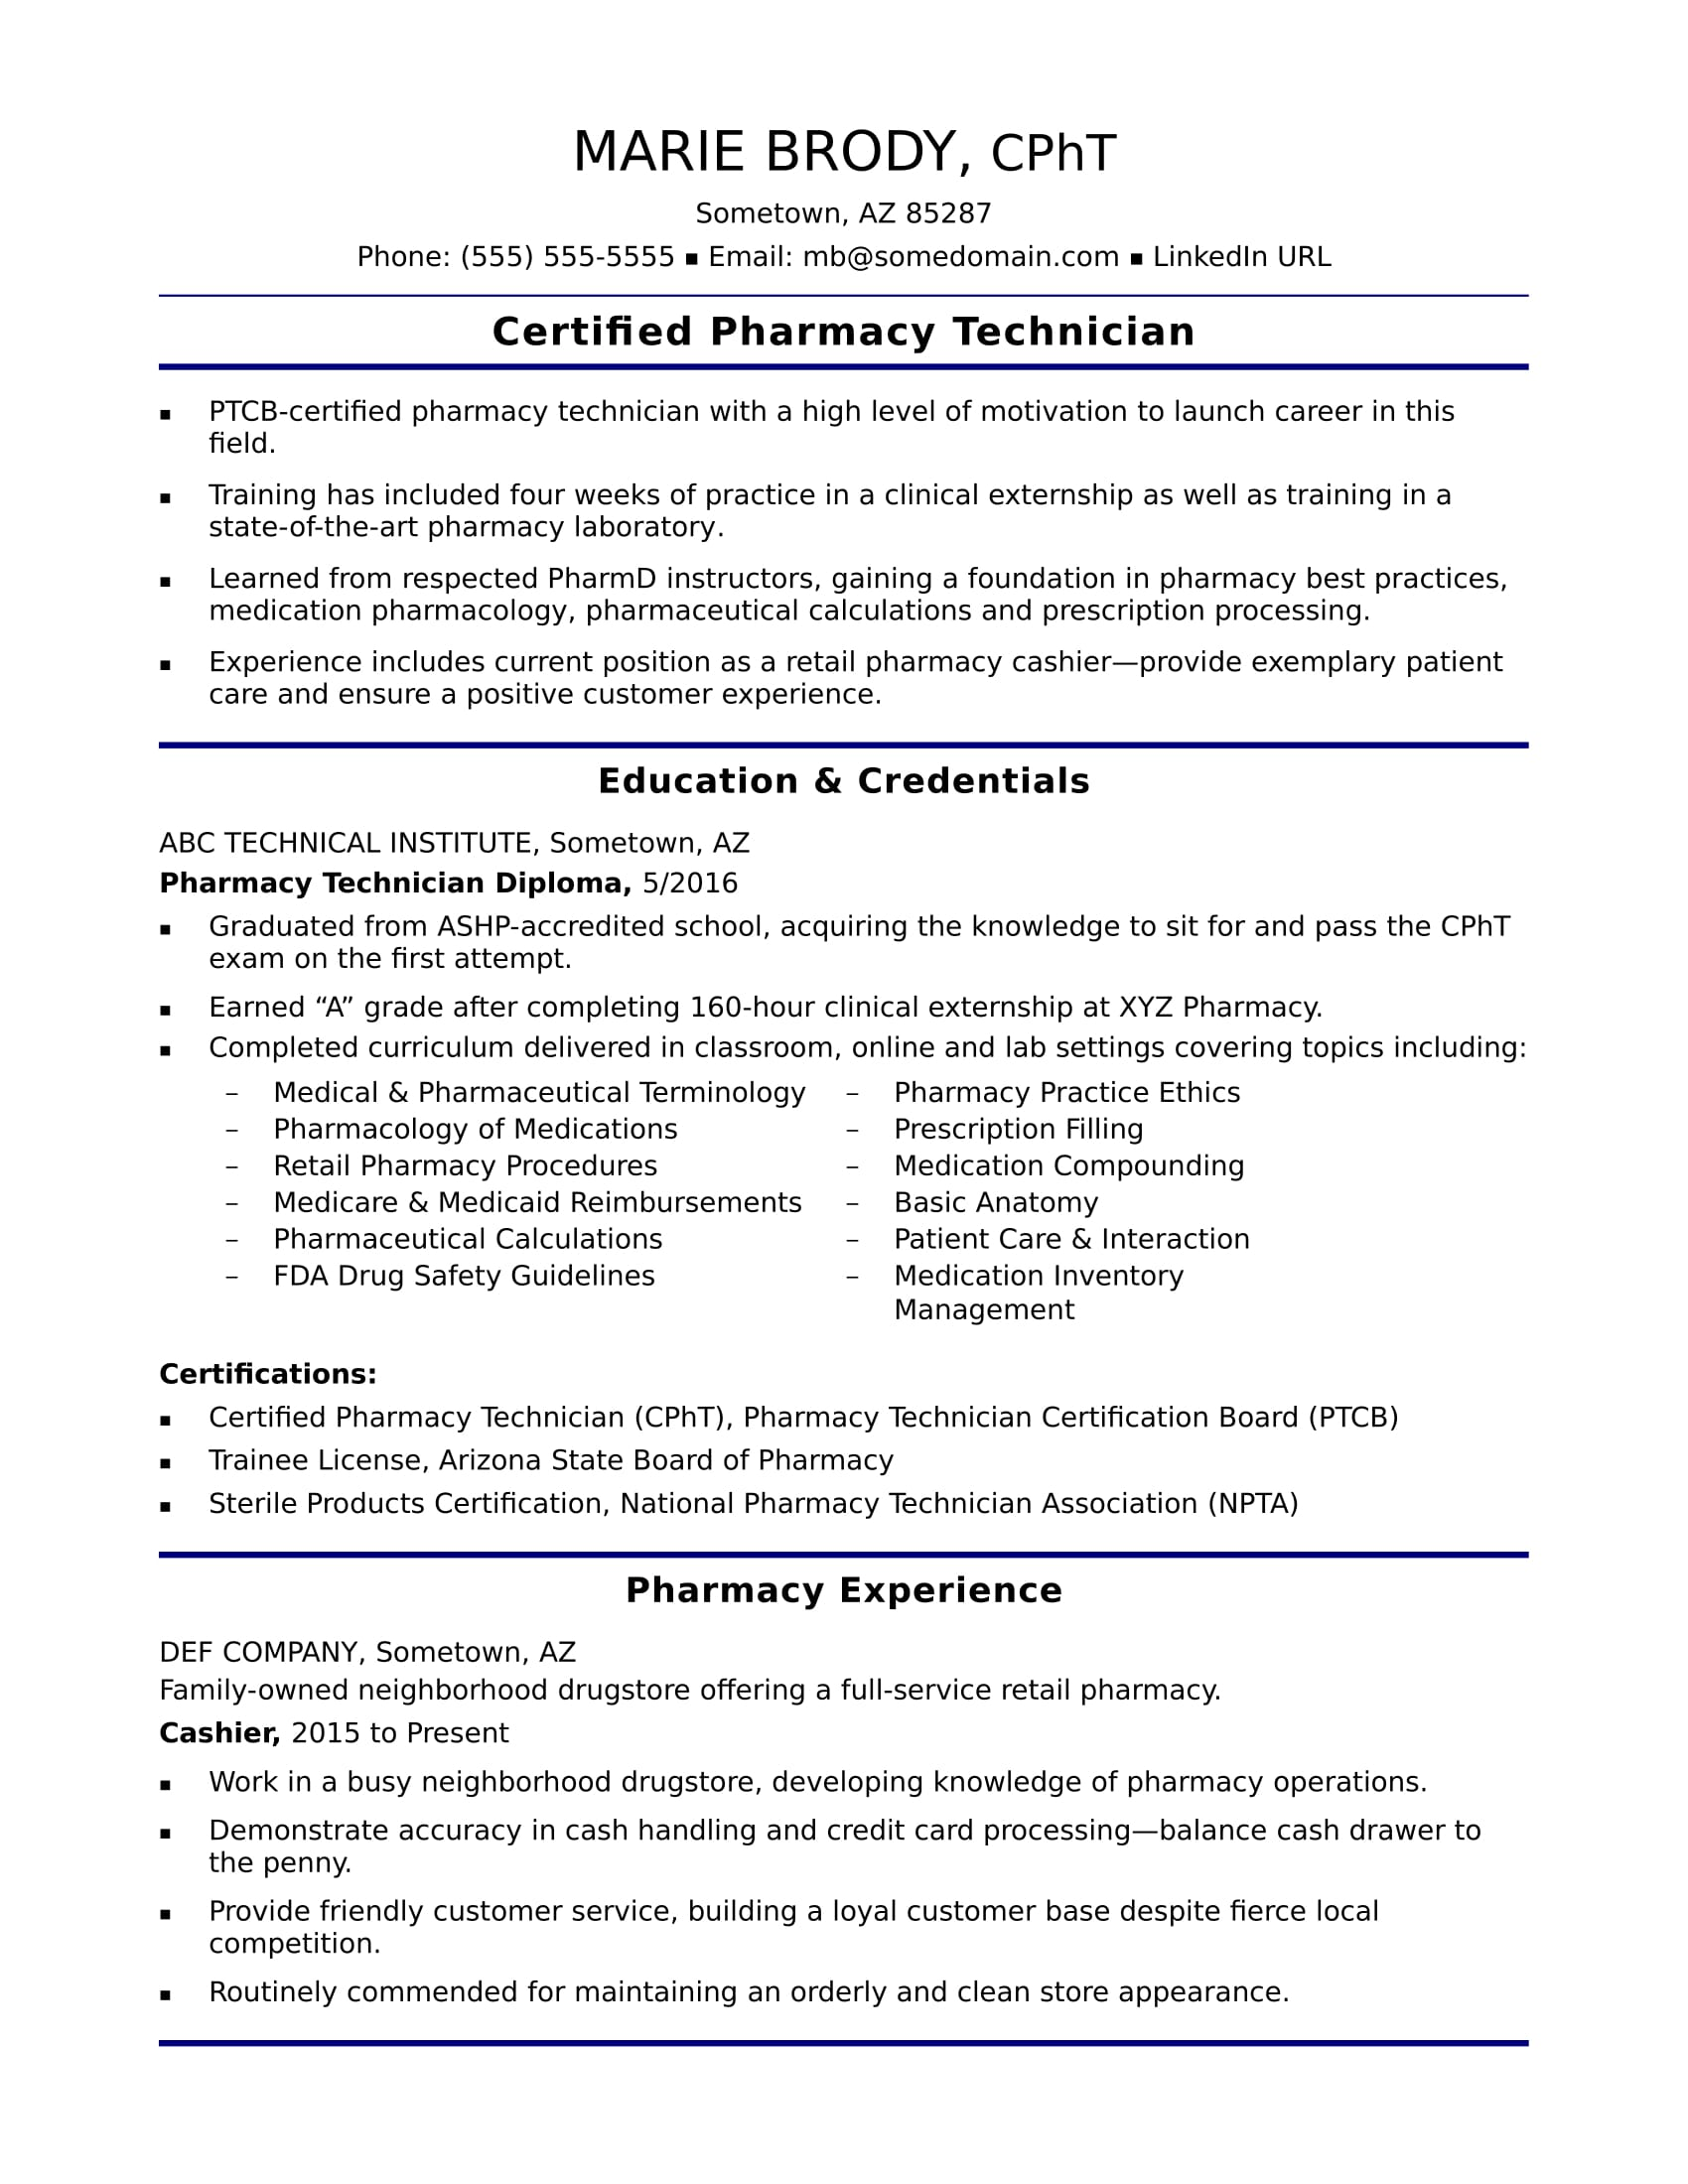 sample resume for an entry level pharmacy technician - Sample Resume For Pharmacy Technician